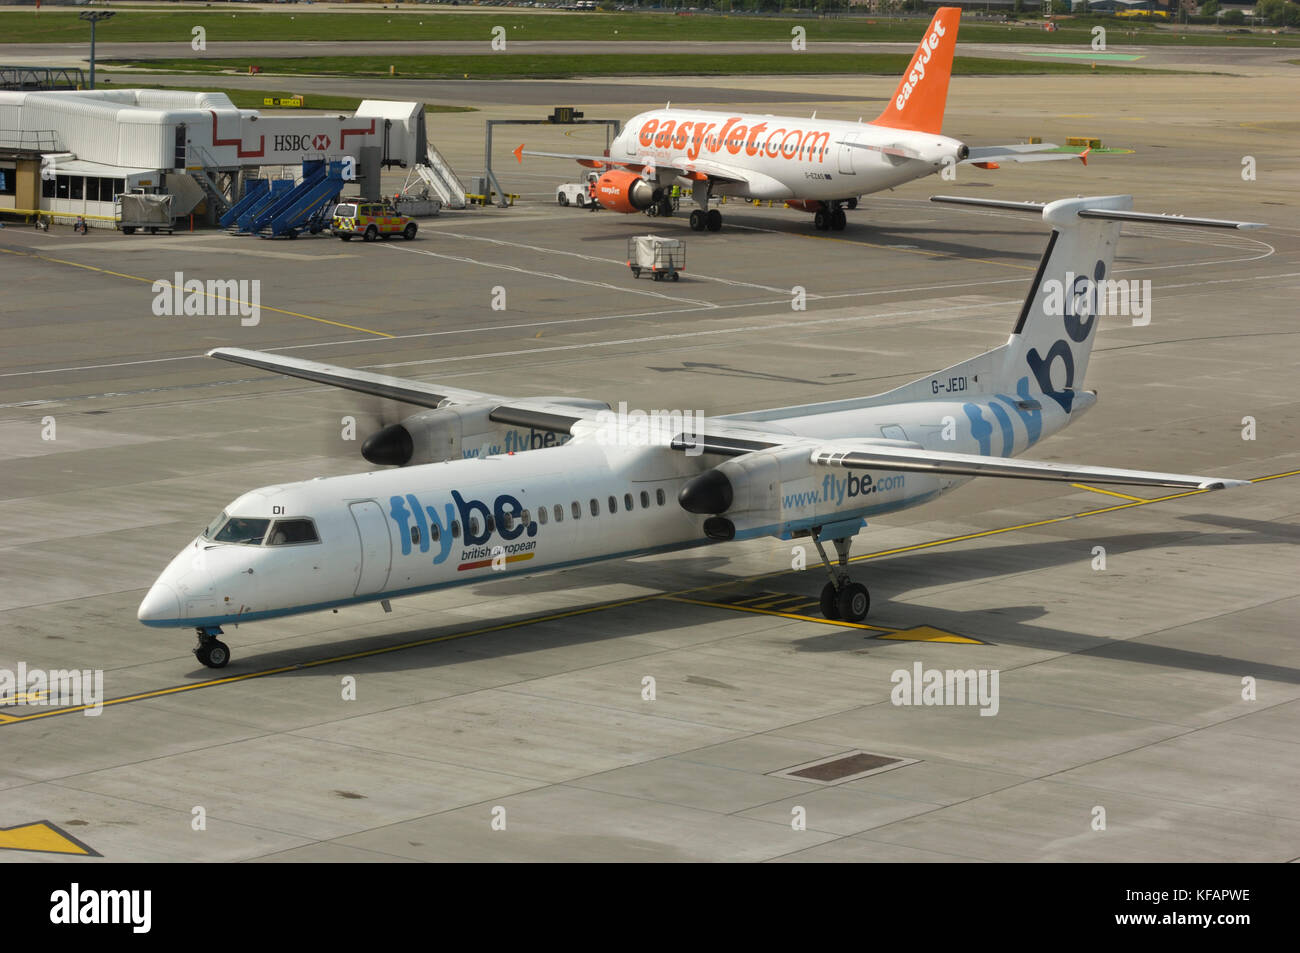 a Flybe Bombardier DHC-8 Dash 8-400 Q400 taxiing with an easyJet Airbus A319-100 parked behind - Stock Image